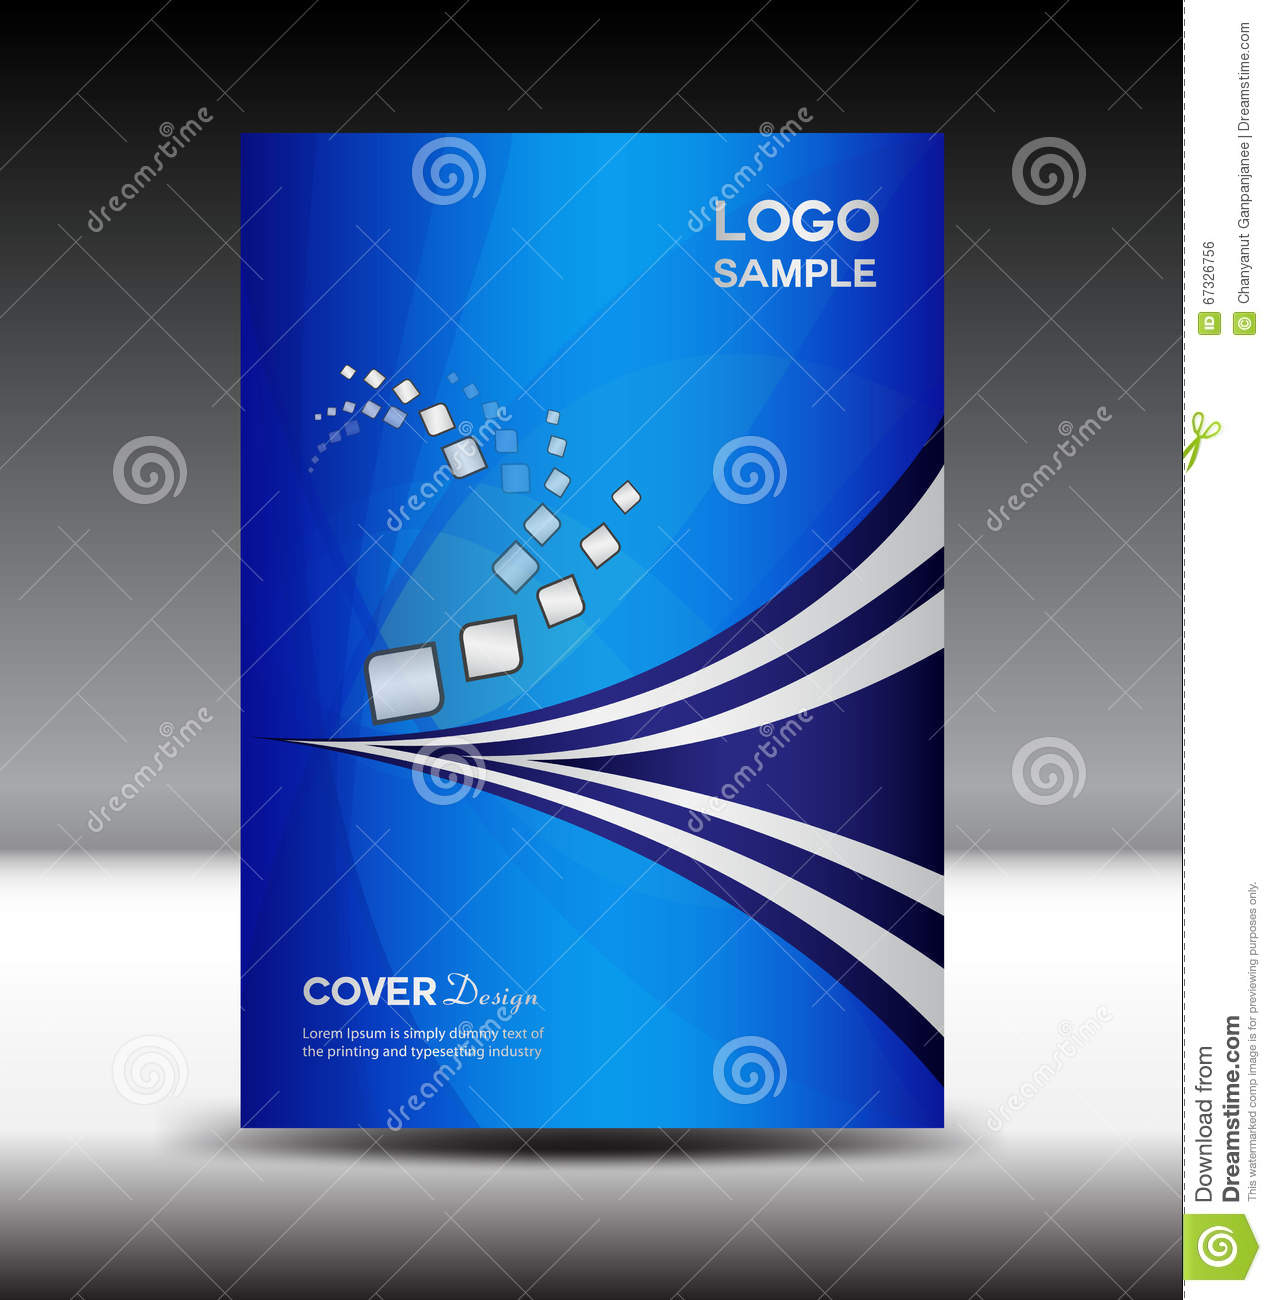 blue cover design and cover annual report vector illustration stock vector image 67326756. Black Bedroom Furniture Sets. Home Design Ideas